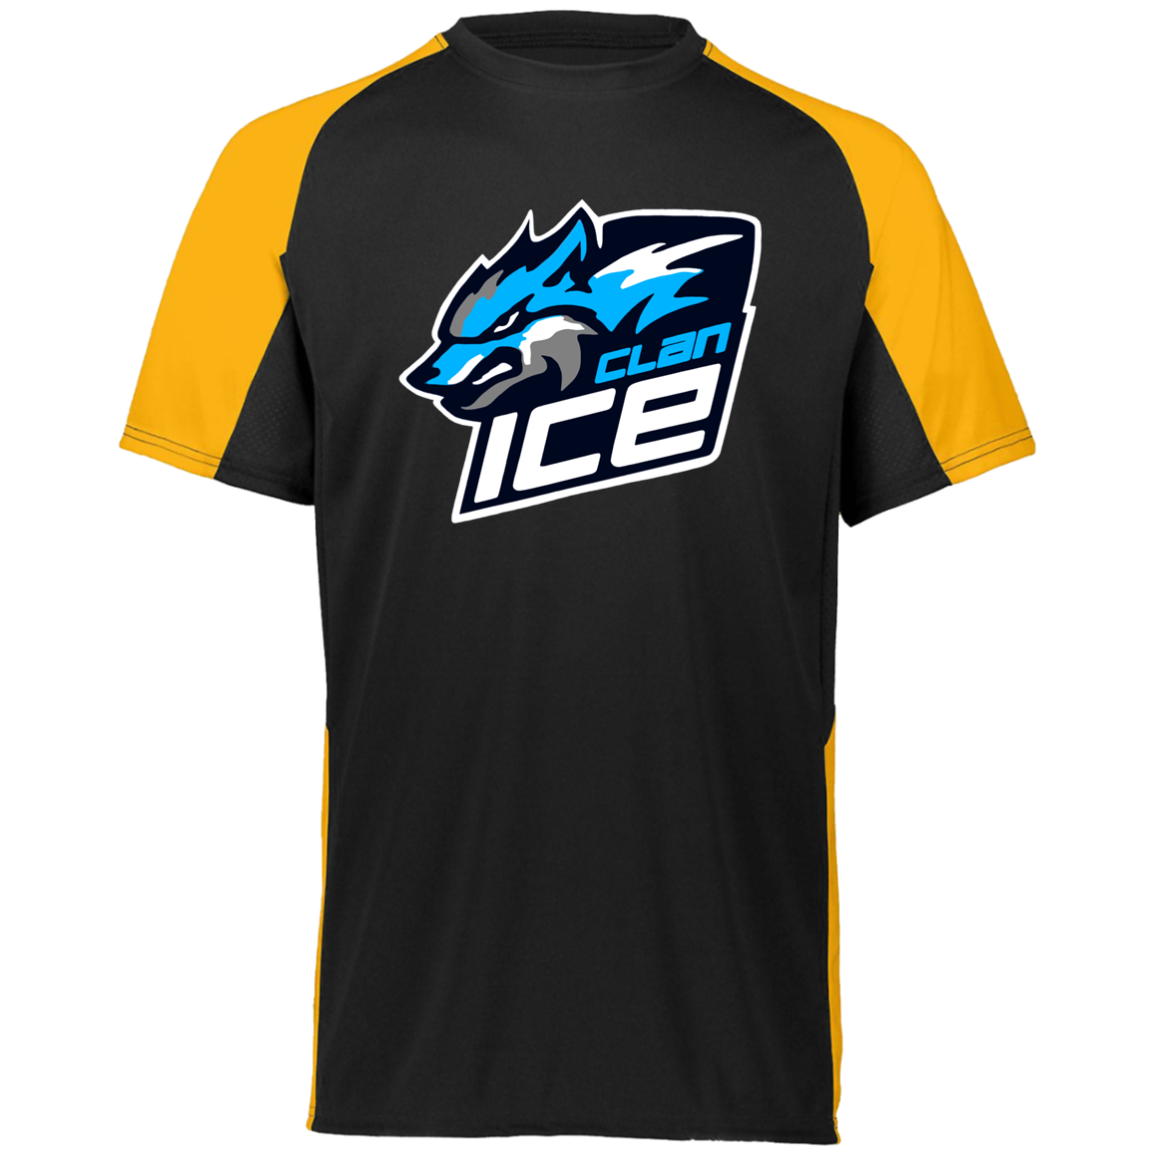 s-ice TEAM JERSEY WITH YOUR NAME ON IT